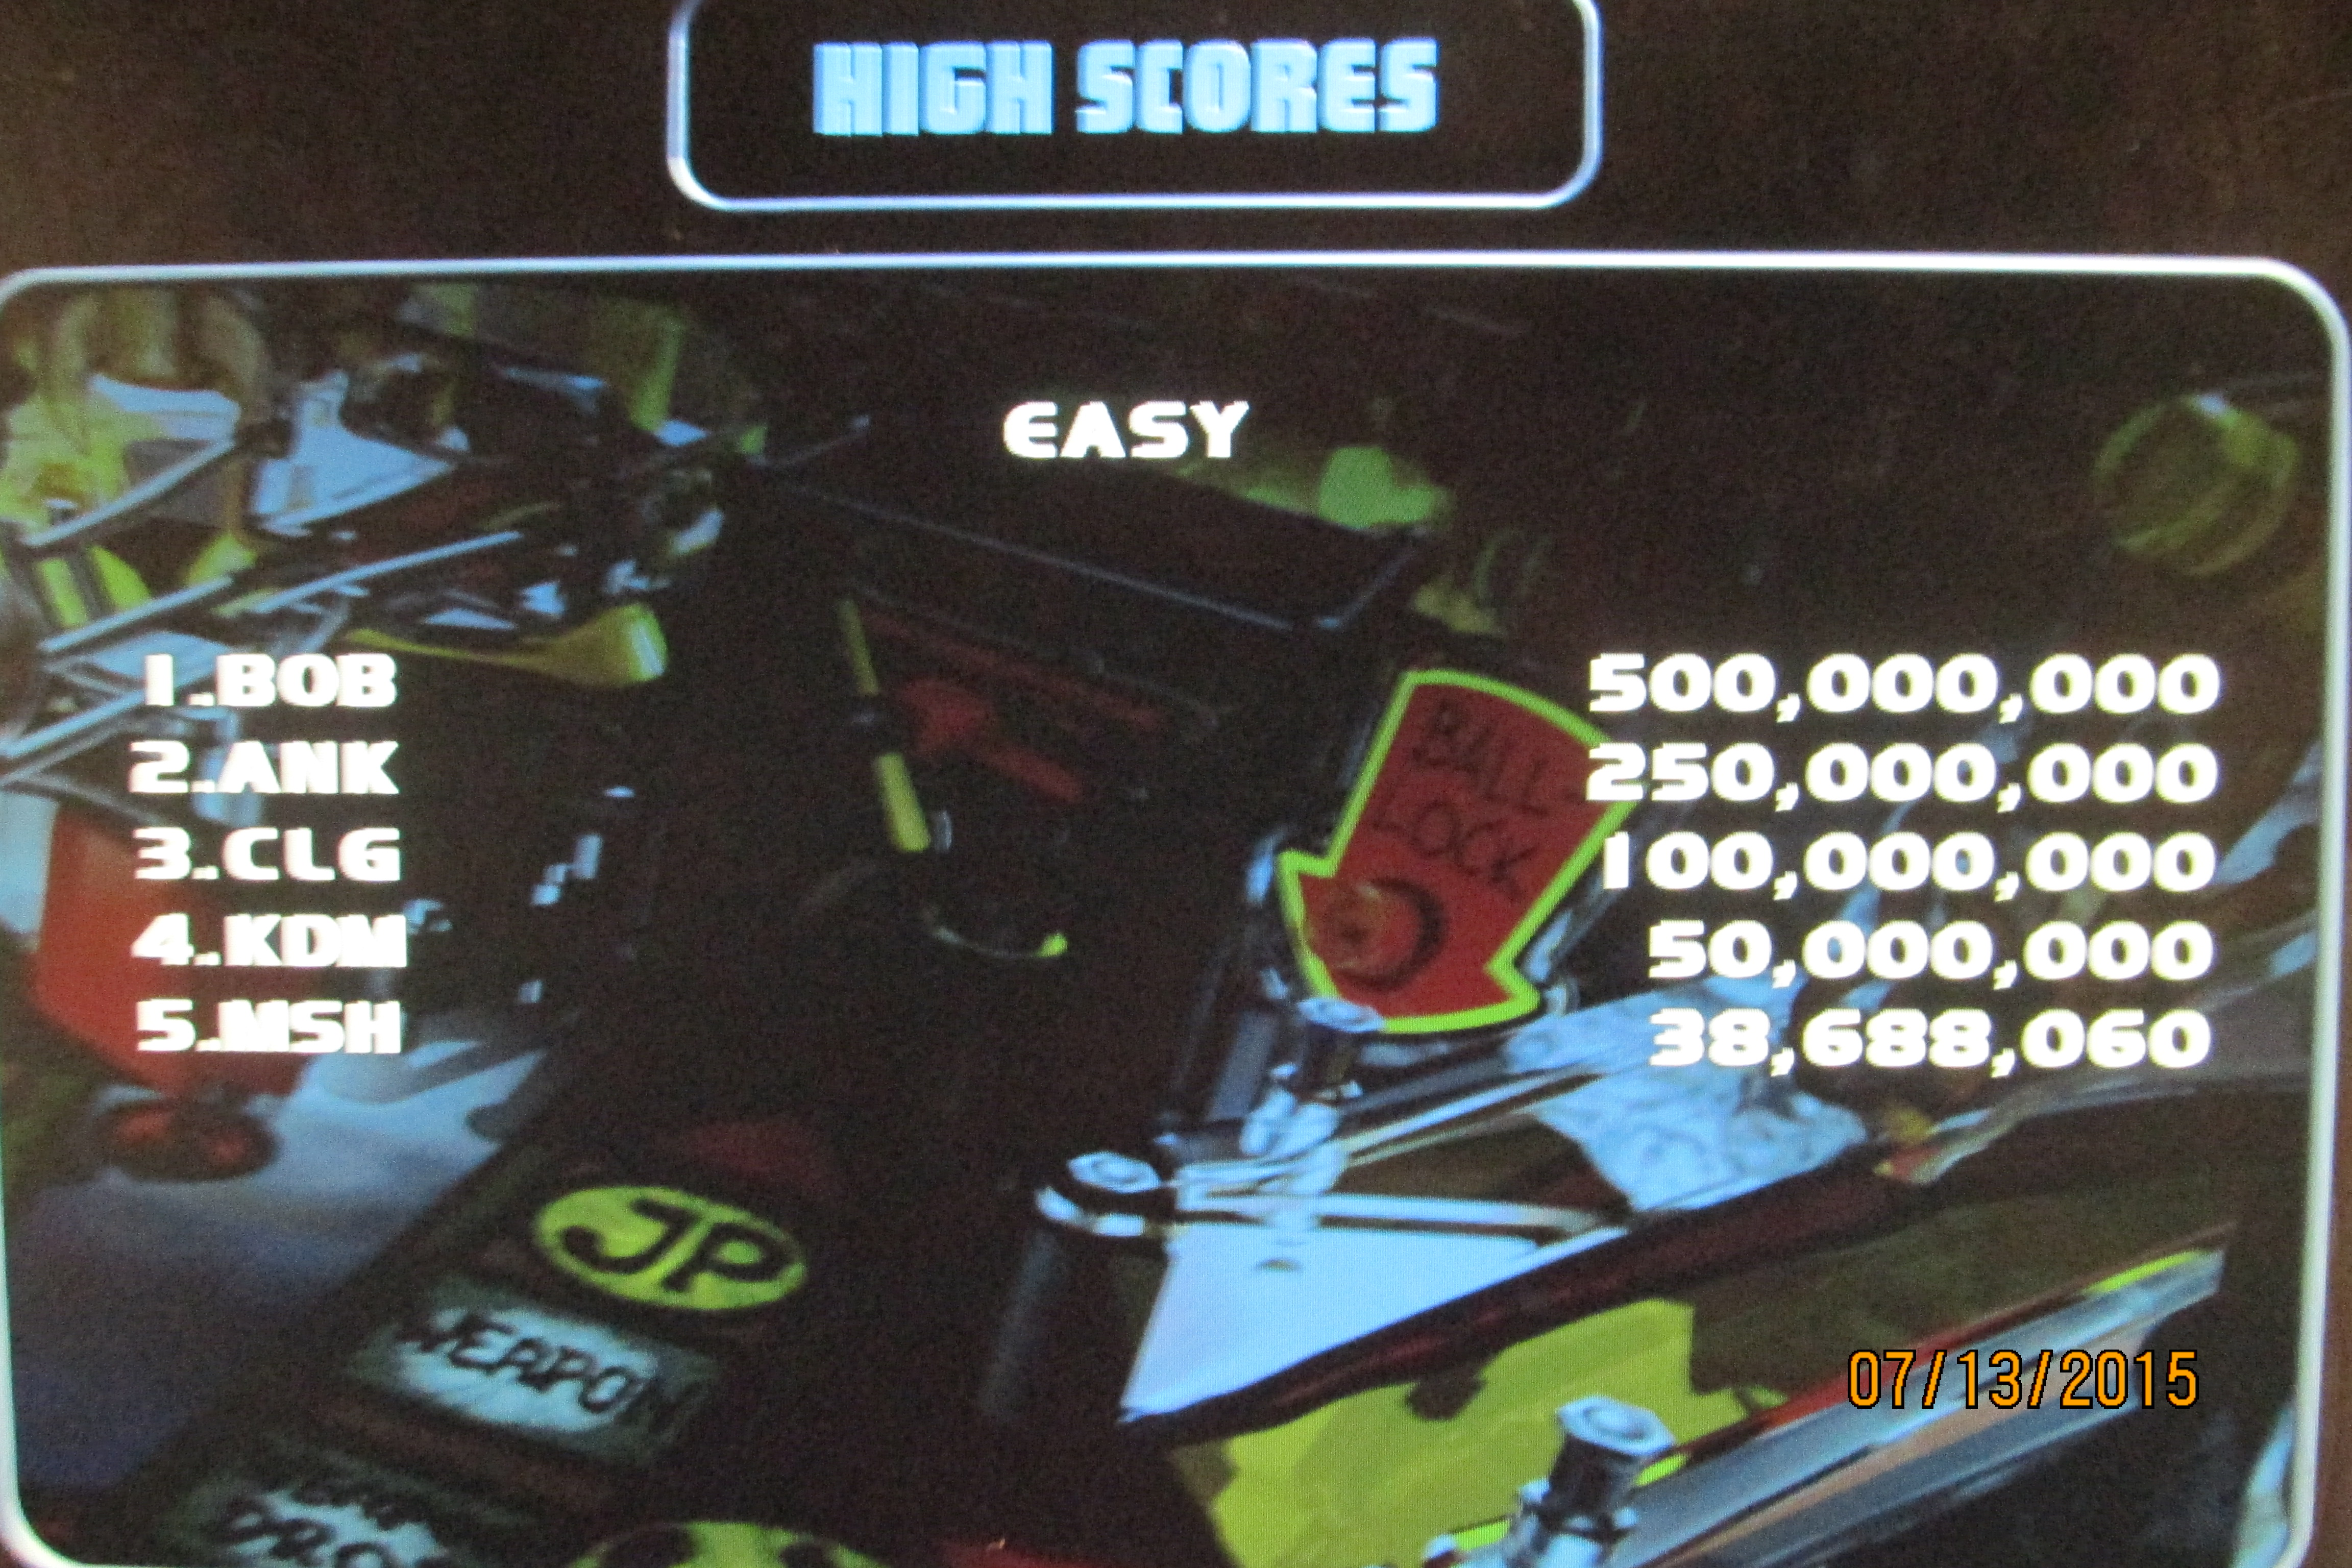 Mark: Worms Pinball [Low] (PC) 38,688,060 points on 2015-07-13 23:46:44